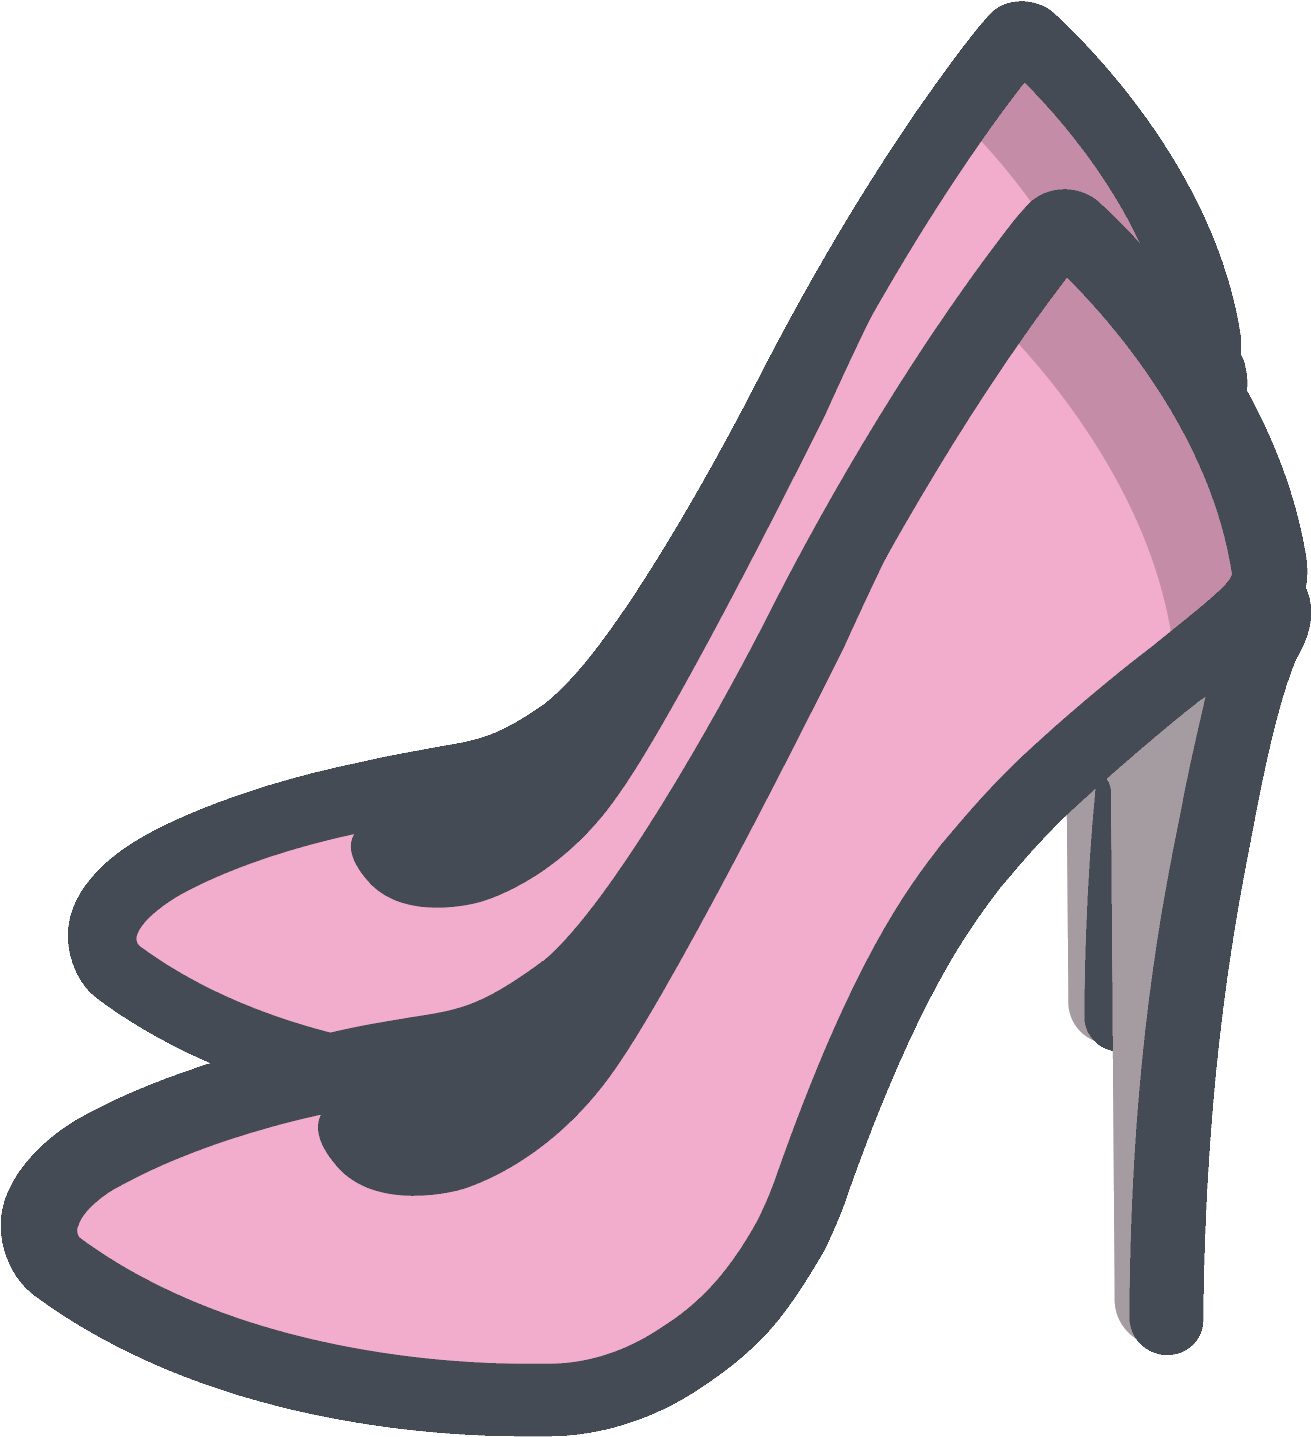 Women Shoes Clipart Pink Shoe Women Shoes Clipart Pink Shoe 1600x1600 Png Clipart Download